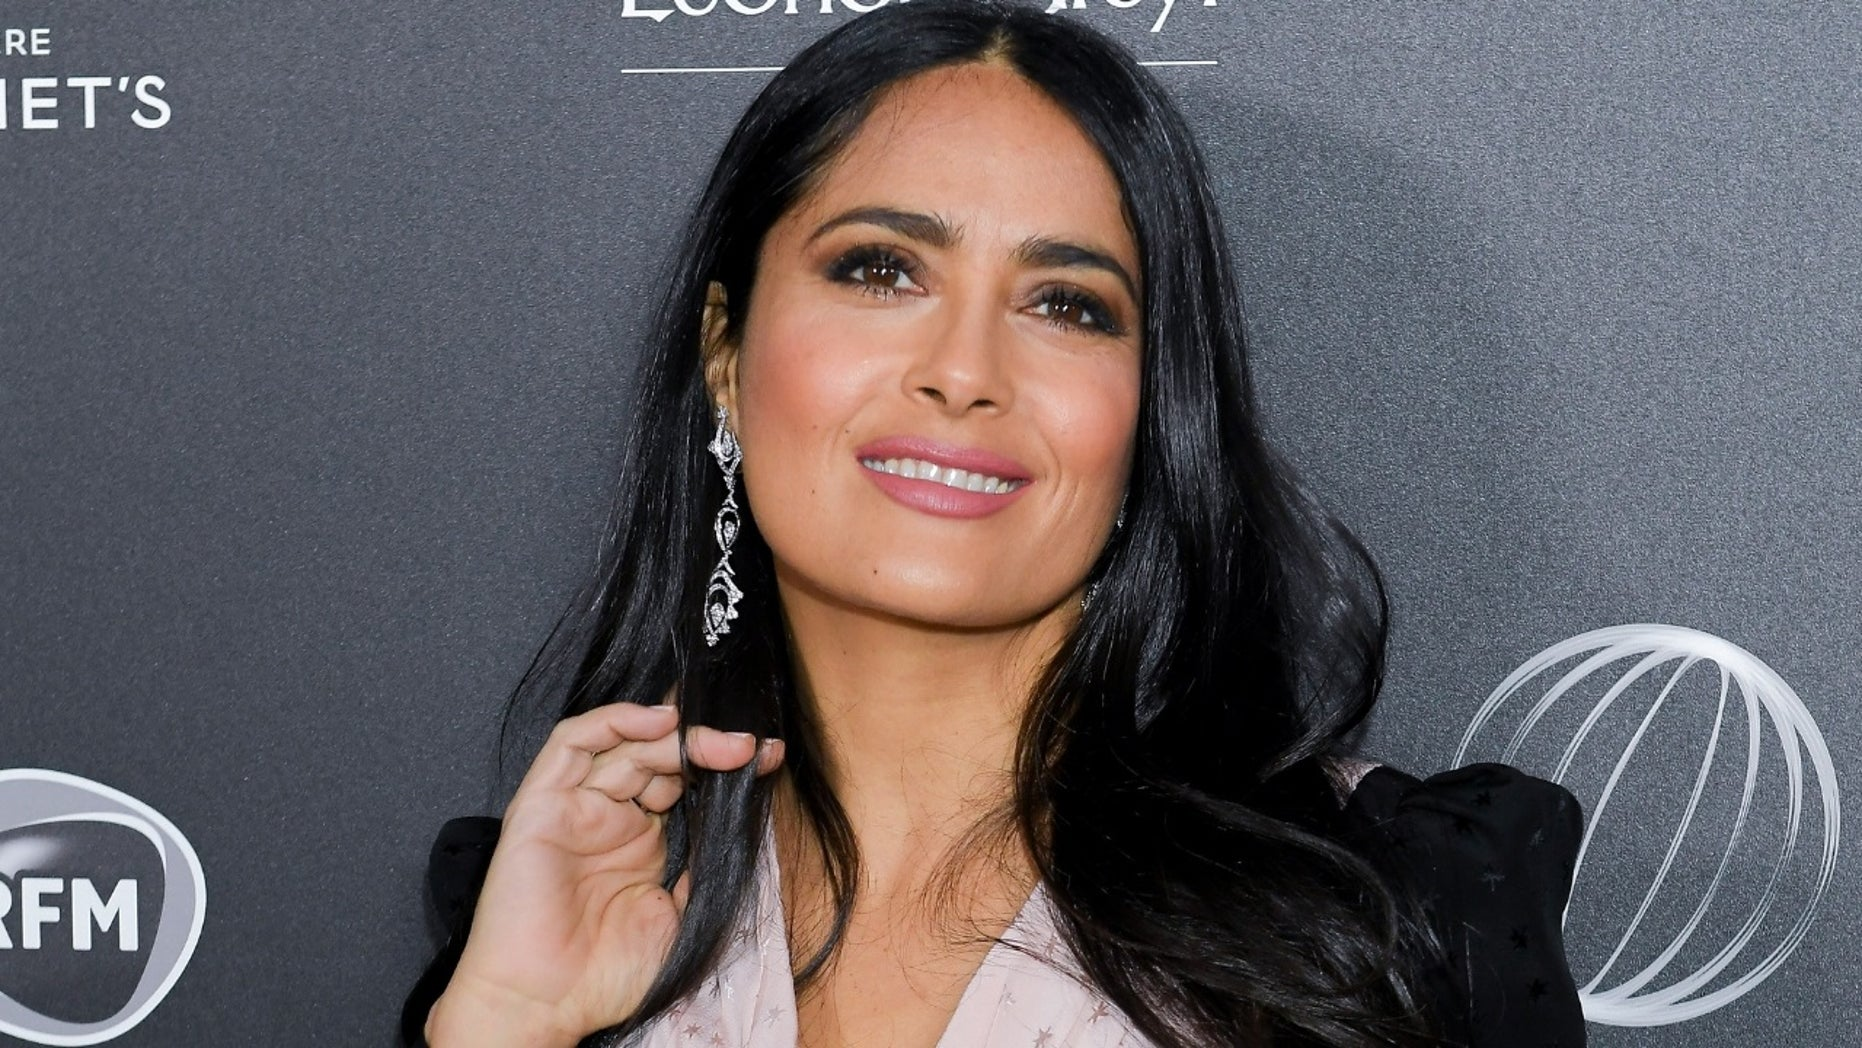 """Actress Salma Hayek gave fans a sneak peek of her secret tattoo as part of her character in the upcoming film """"The Hitman's Wife's Bodyguard."""""""